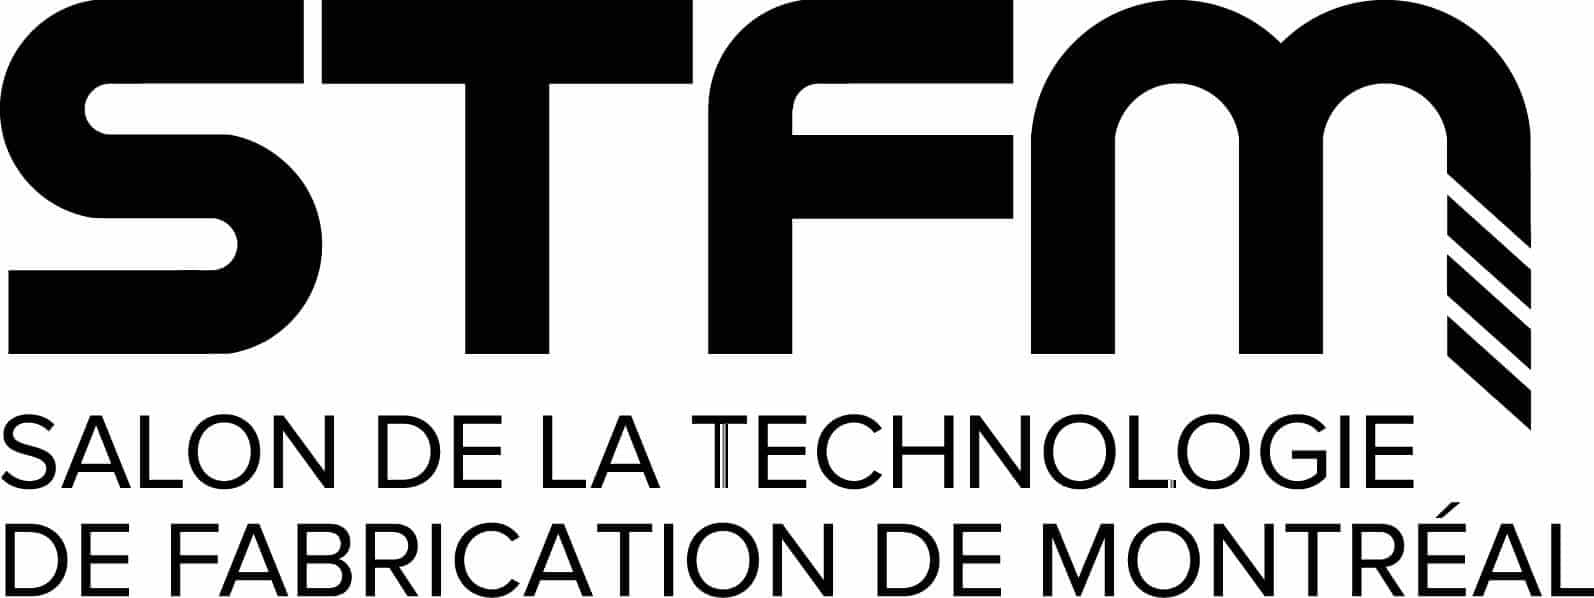 mmts17_logo-french-k